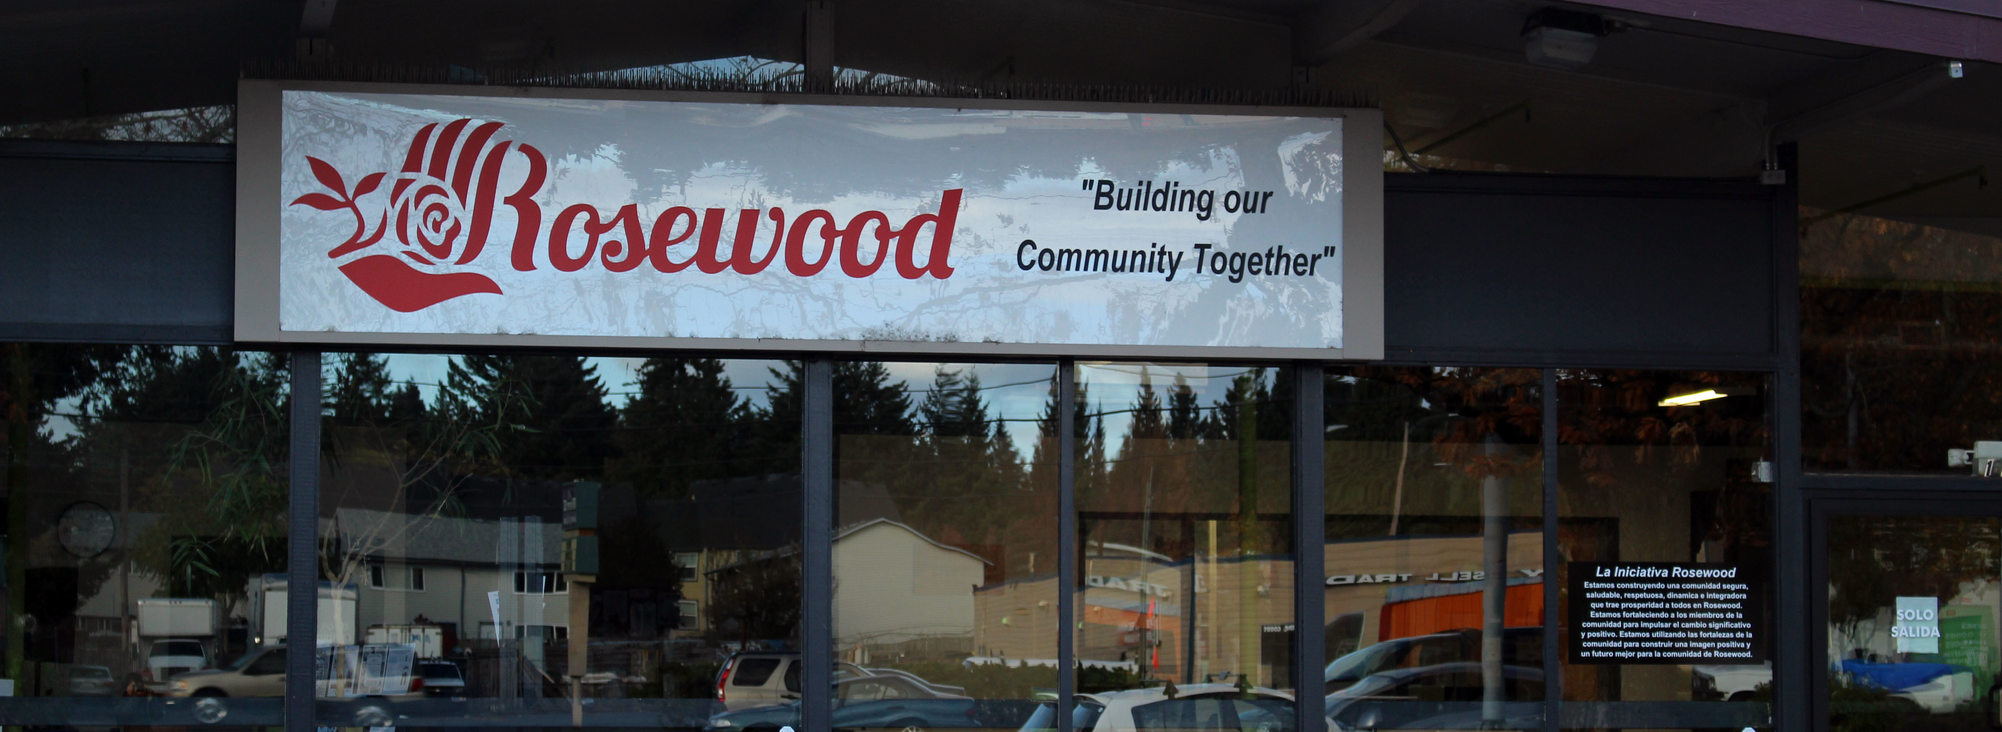 Photo of Rosewood Initiative's building